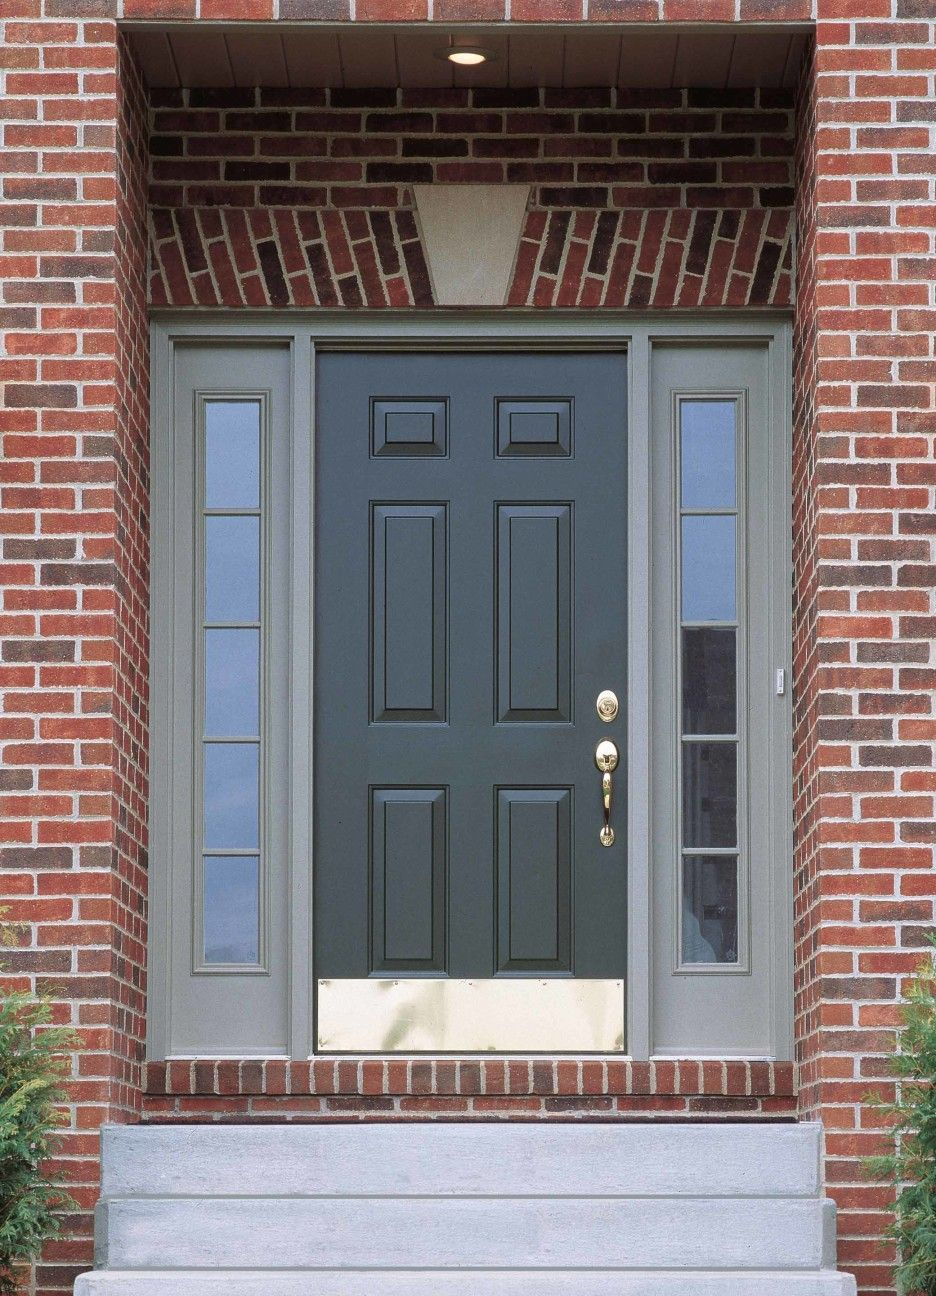 Exterior dark grey wooden door with stainless steel handle dark grey wooden door with stainless steel handle connected by glass window with grey wooden frames chic front door colors for brick houses offers amazing rubansaba